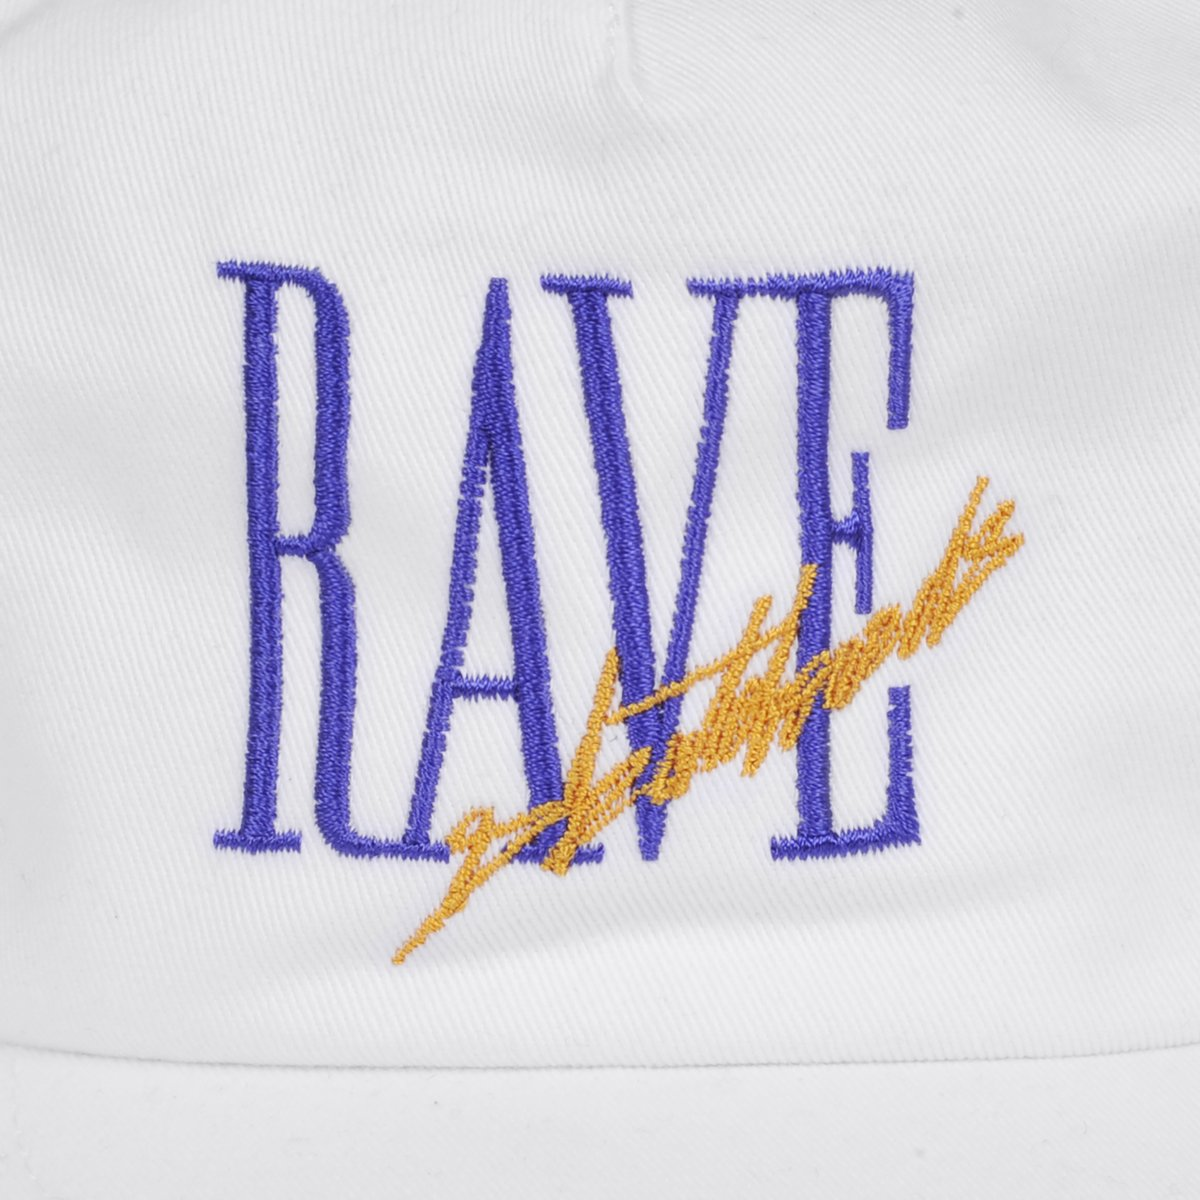 【RAVE SKATEBOARDS/レイブスケートボード】TRACY CAP 5パネルキャップ / WHITE